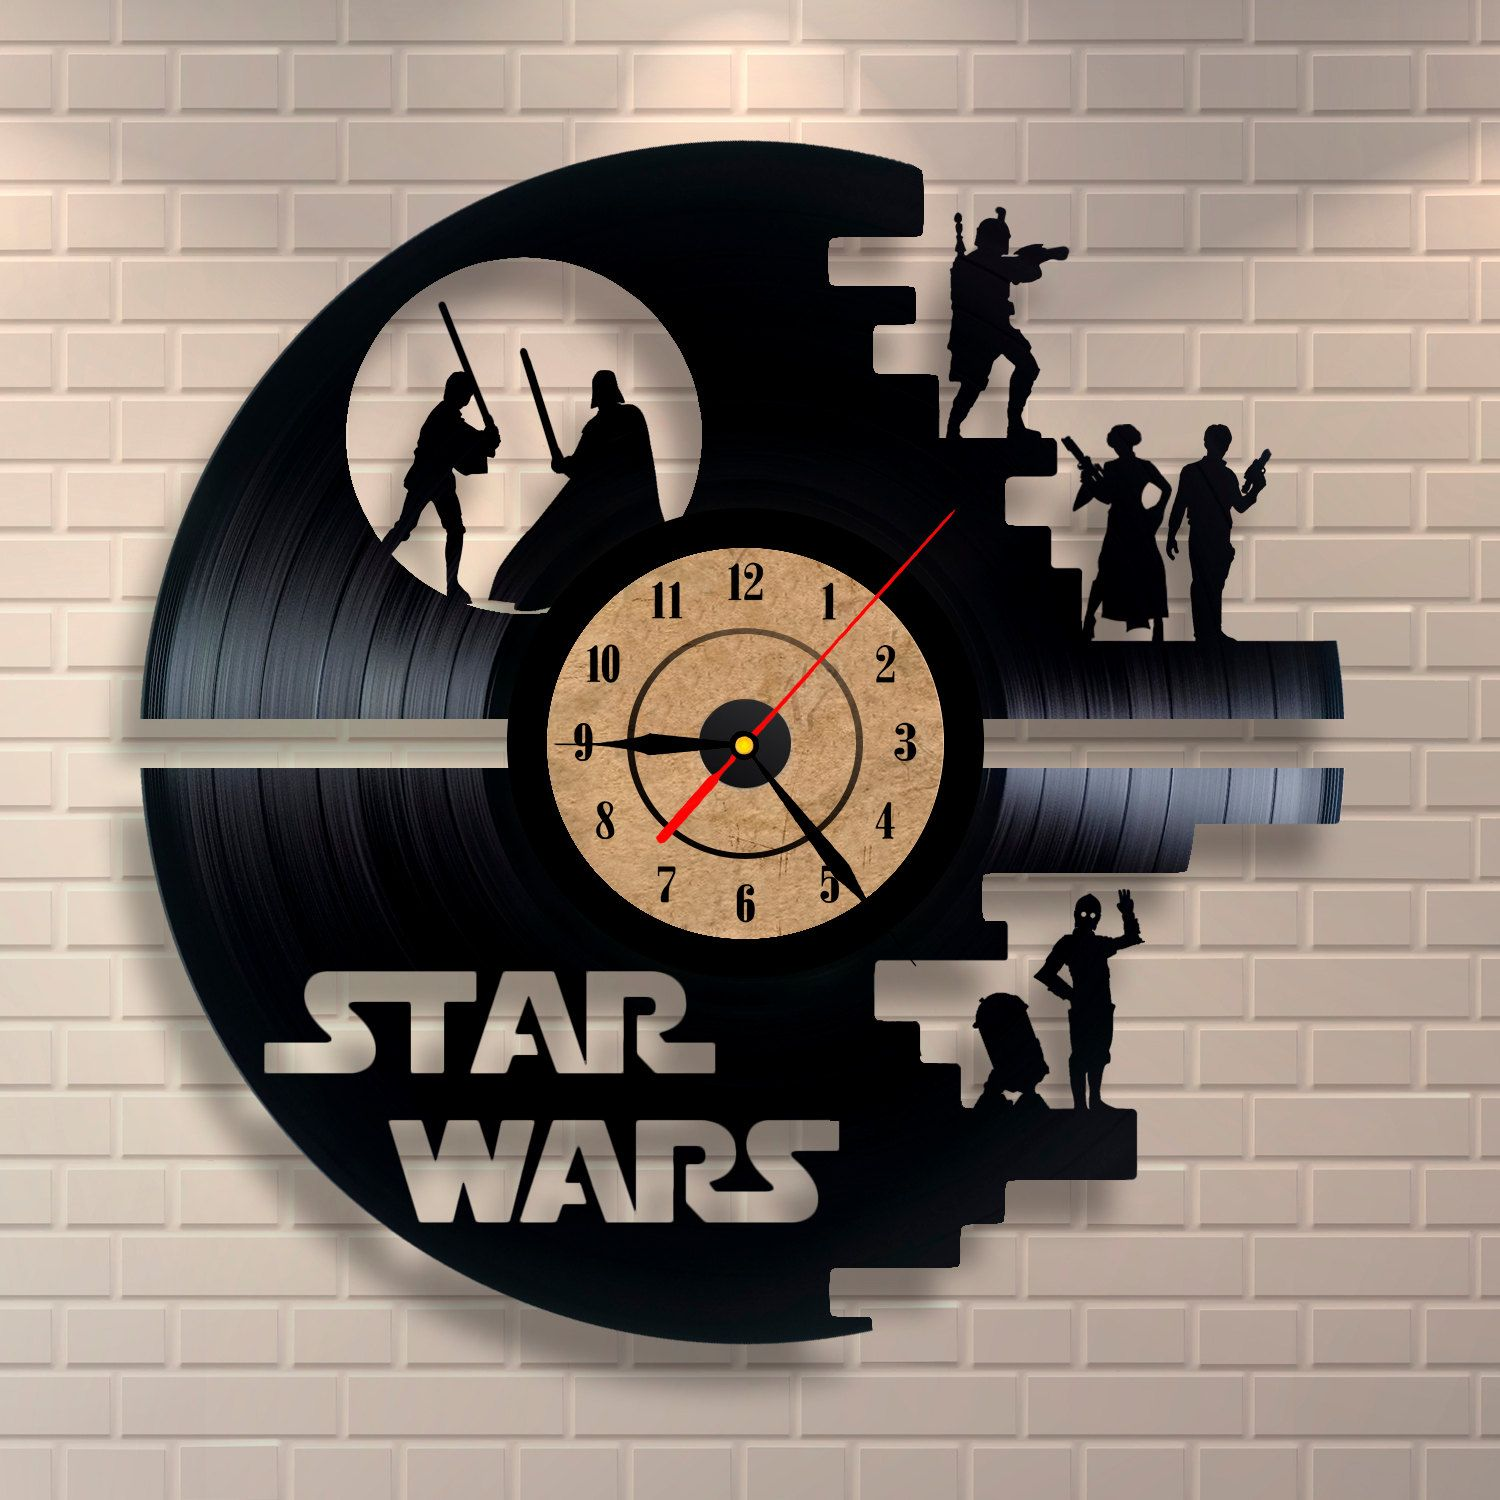 star wars vinyl clock via etsy what we watch pinterest ideen geschenkideen und star wars. Black Bedroom Furniture Sets. Home Design Ideas